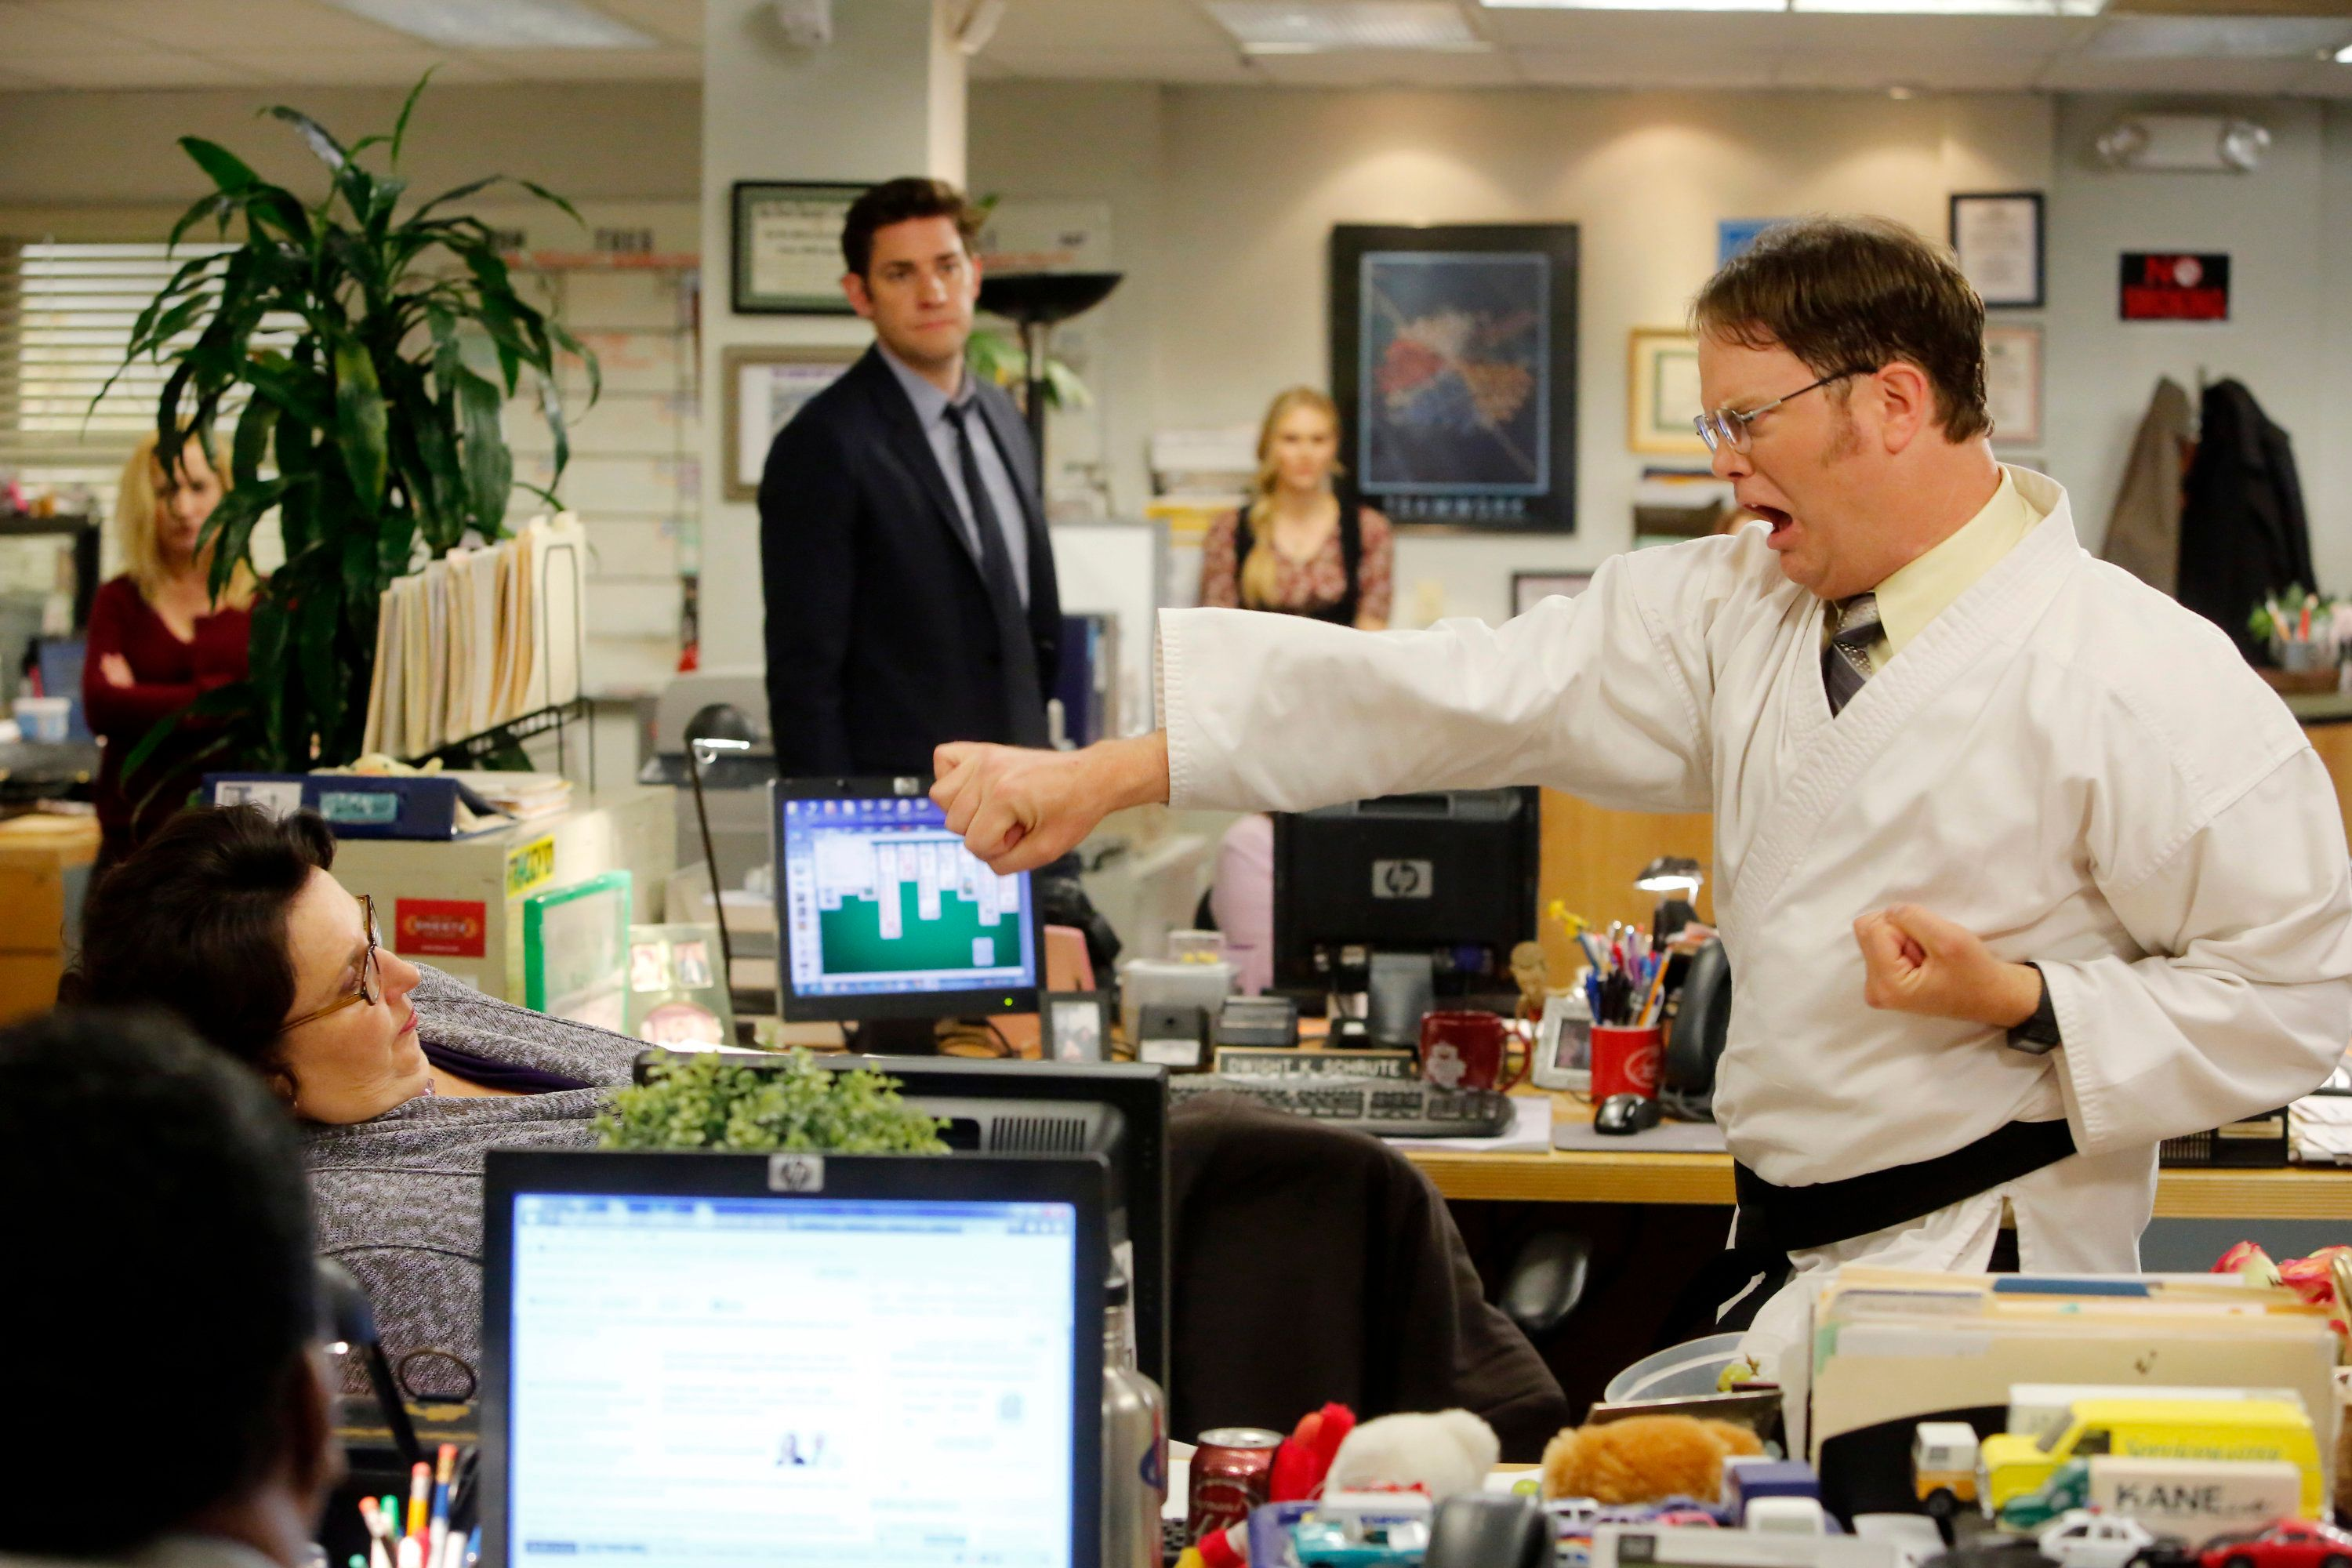 THE OFFICE -- 'Livin' The Dream' Episode 921 -- Pictured: (l-r) Phyllis Smith as Phyllis Vance, John Krasinski as Jim Halpert, Rainn Wilson as Dwight Schrute -- (Photo by: Vivian Zink/NBC/NBCU Photo Bank via Getty Images)